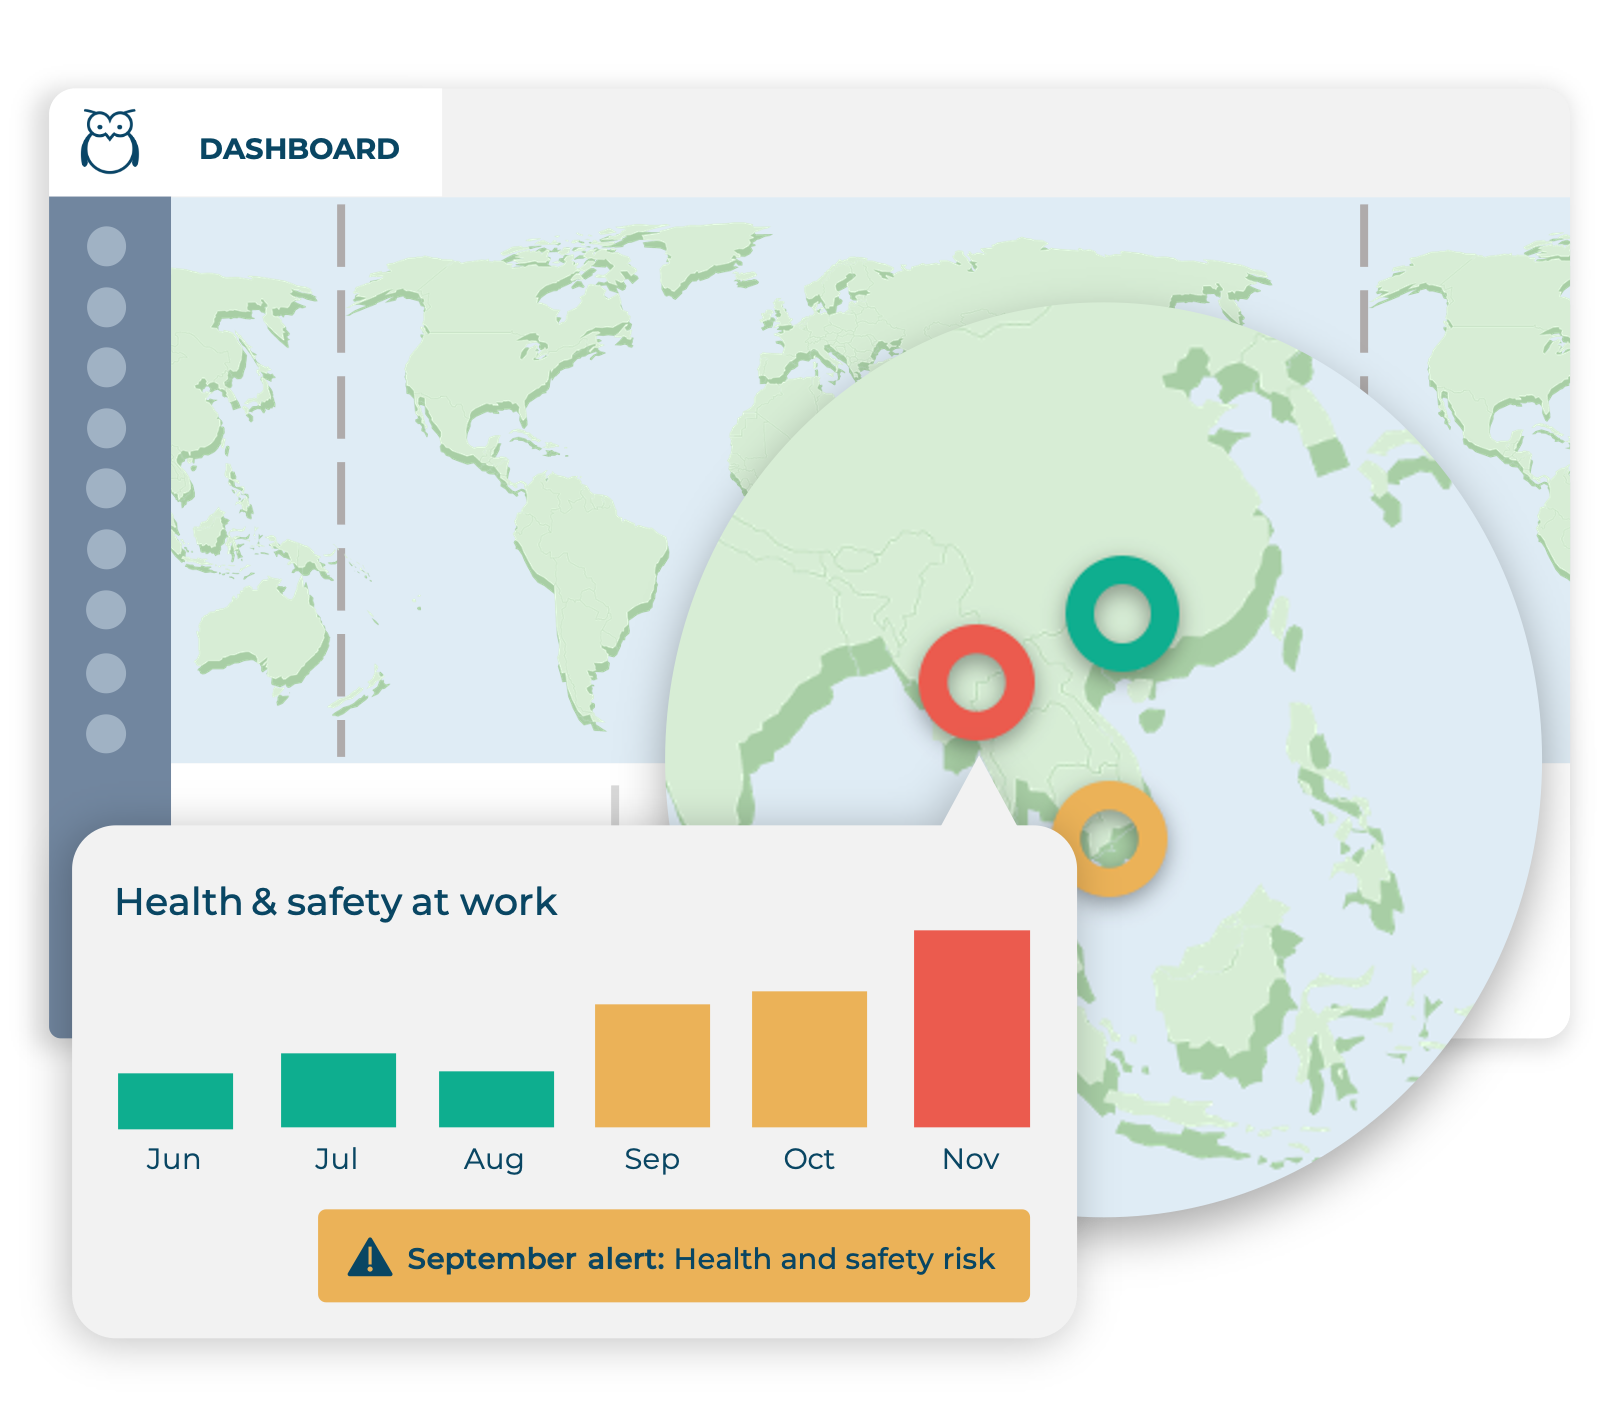 Ulula dashboard map view with color-coded donuts increased risk in the 'health and safety' category over time